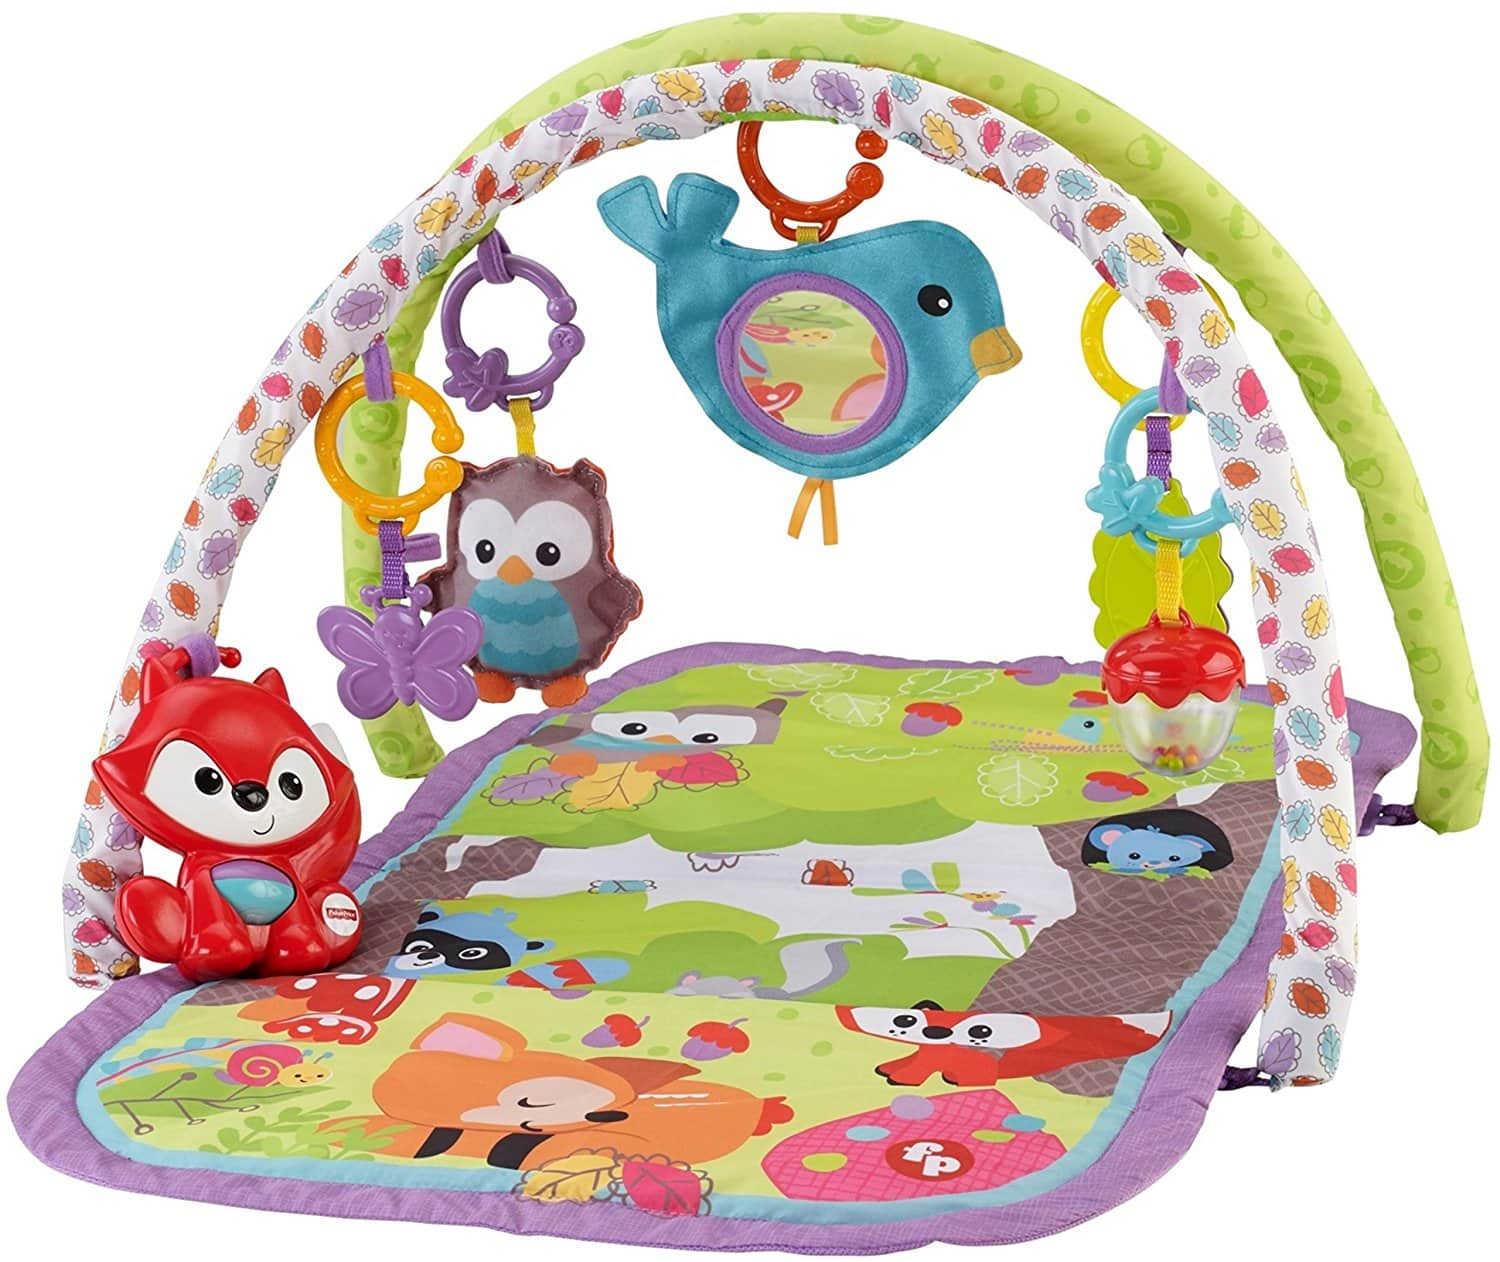 Fisher-Price Woodland Friends 3-in-1 Musical Activity Gym - $19.99 @Amazon